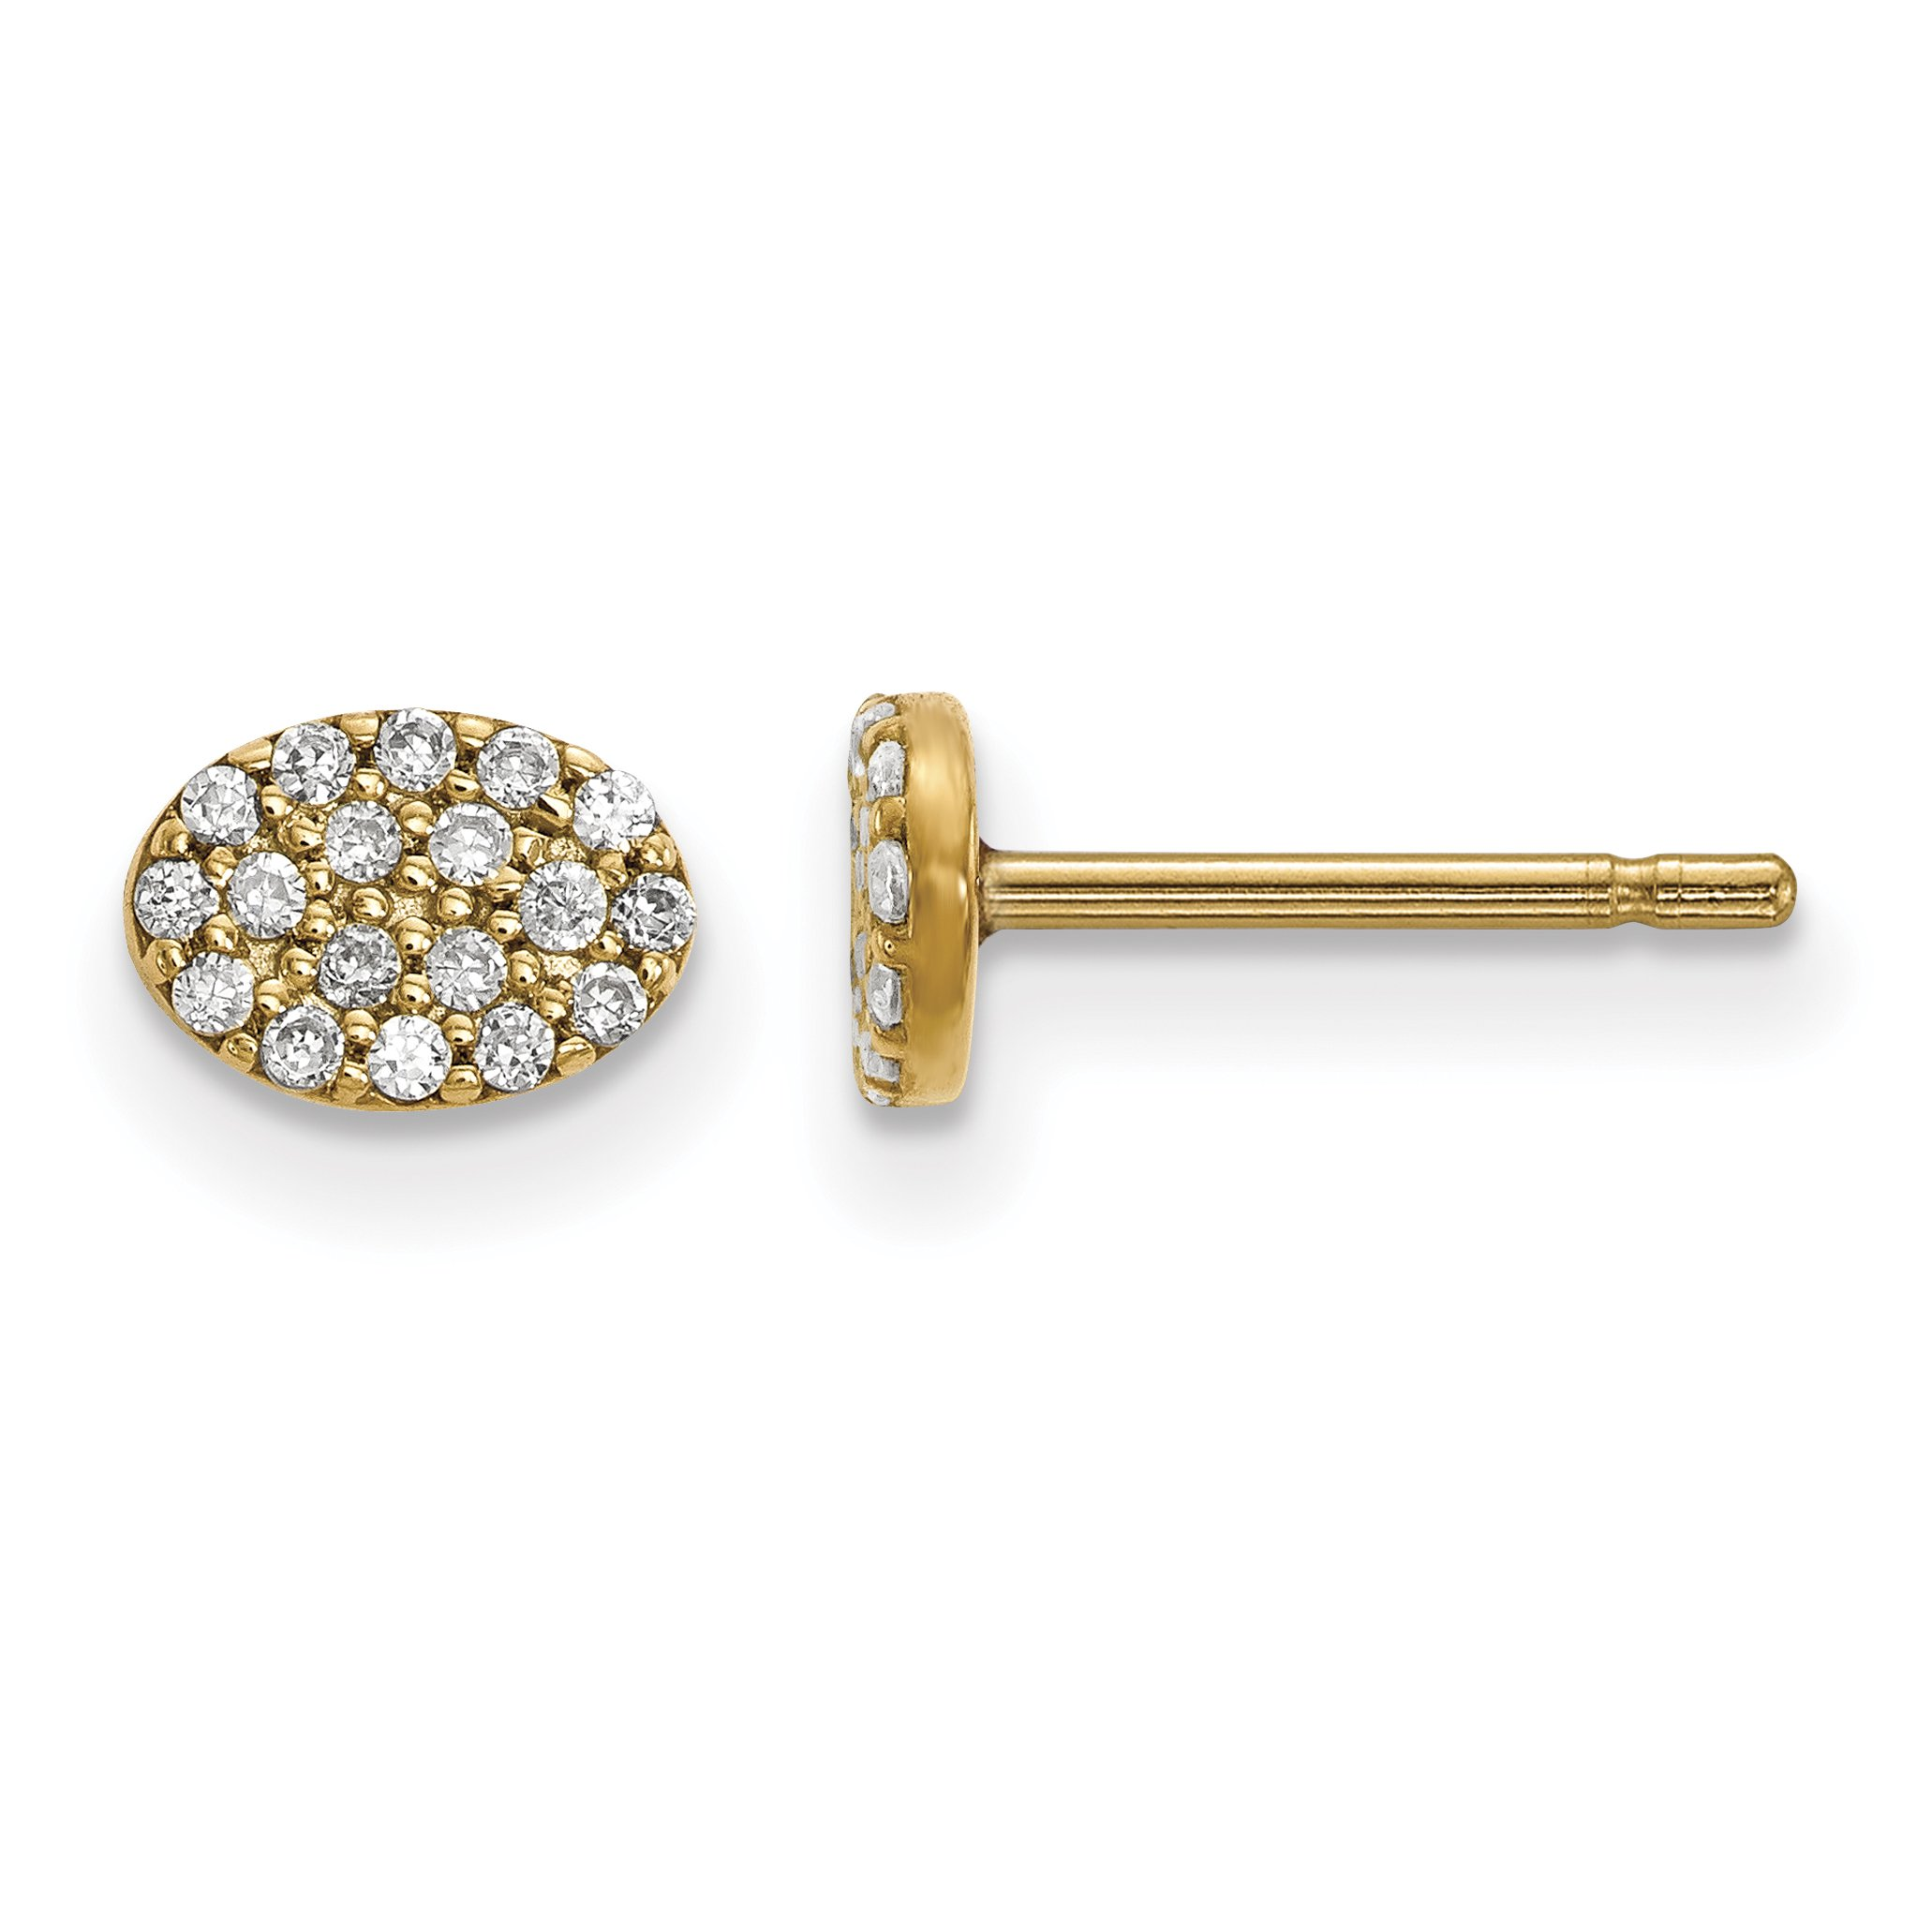 ICE CARATS 14k Yellow Gold Diamond Cluster Oval Post Stud Ball Button Earrings Fine Jewelry Gift Set For Women Heart